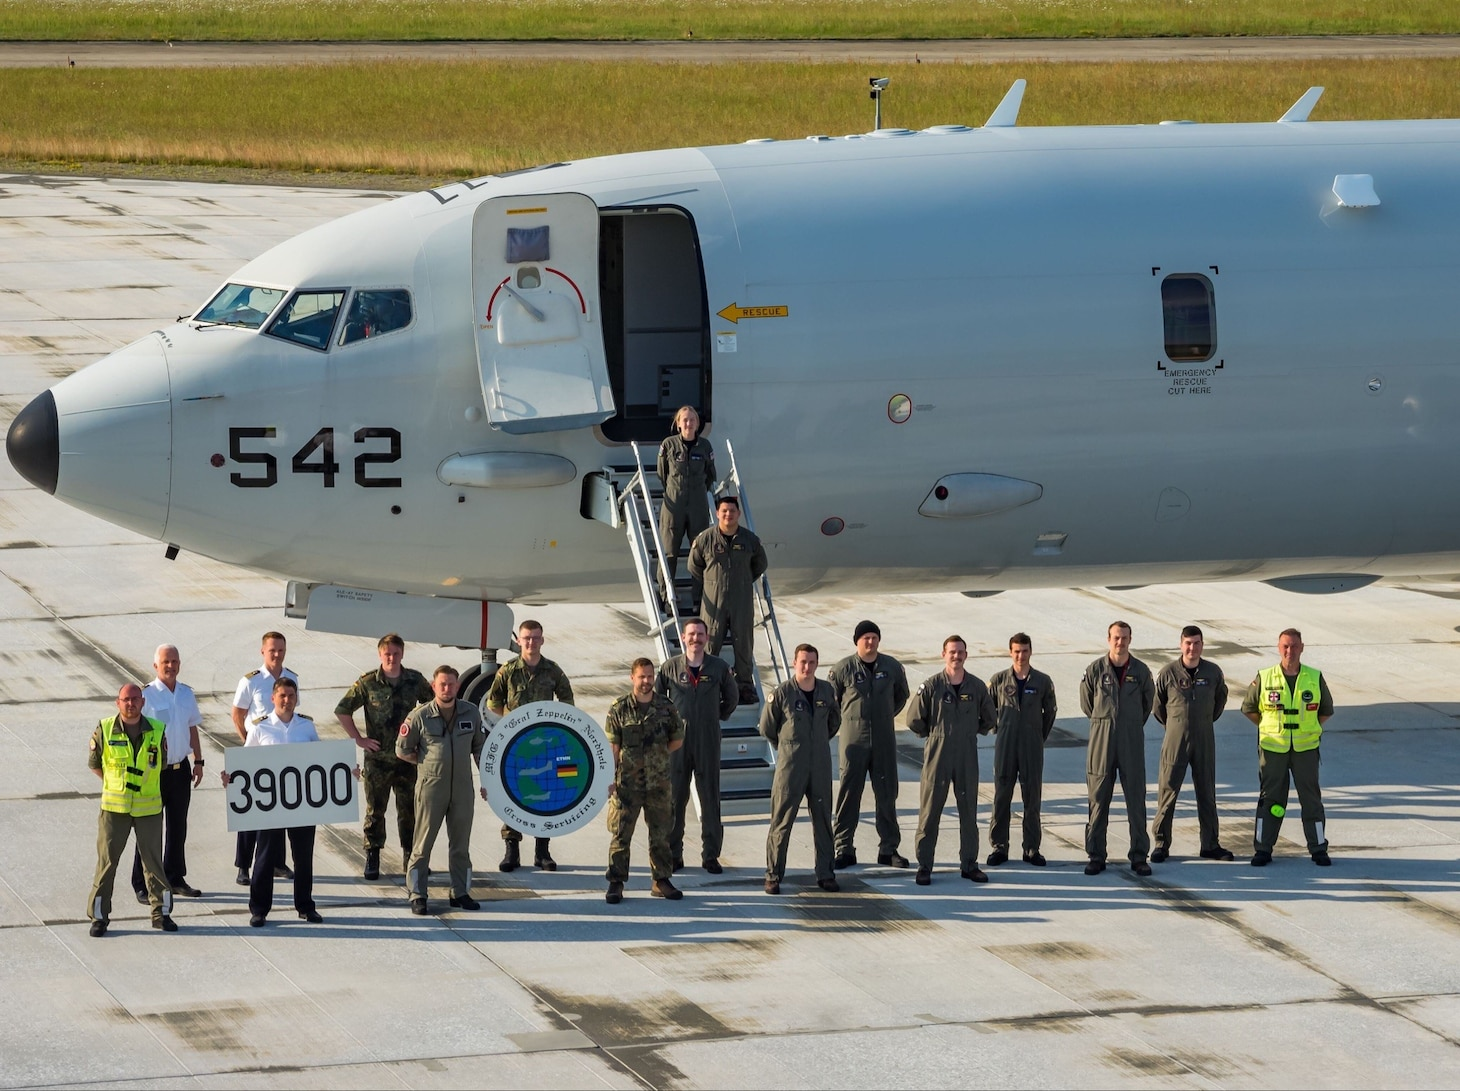 NORDHOLZ, Germany (June 19, 2021)  VP-4's Combat Aircrew TEN lands and refuels at Nordholz, Germany's airfield (ETMN) while supporting BALTOPS 50 exercise.  Also, VP-4 celebrates with ETMN personnel by being the 39,000 aircraft landing at the airfield. Held annually since 1972, BALTOPS is the premier maritime-led exercise in the Baltic Sea region and one of the largest exercises in northern Europe. BALTOPS 50 hosted 16 NATO countries and two partner nations providing high-end training across the entire spectrum of naval warfare.